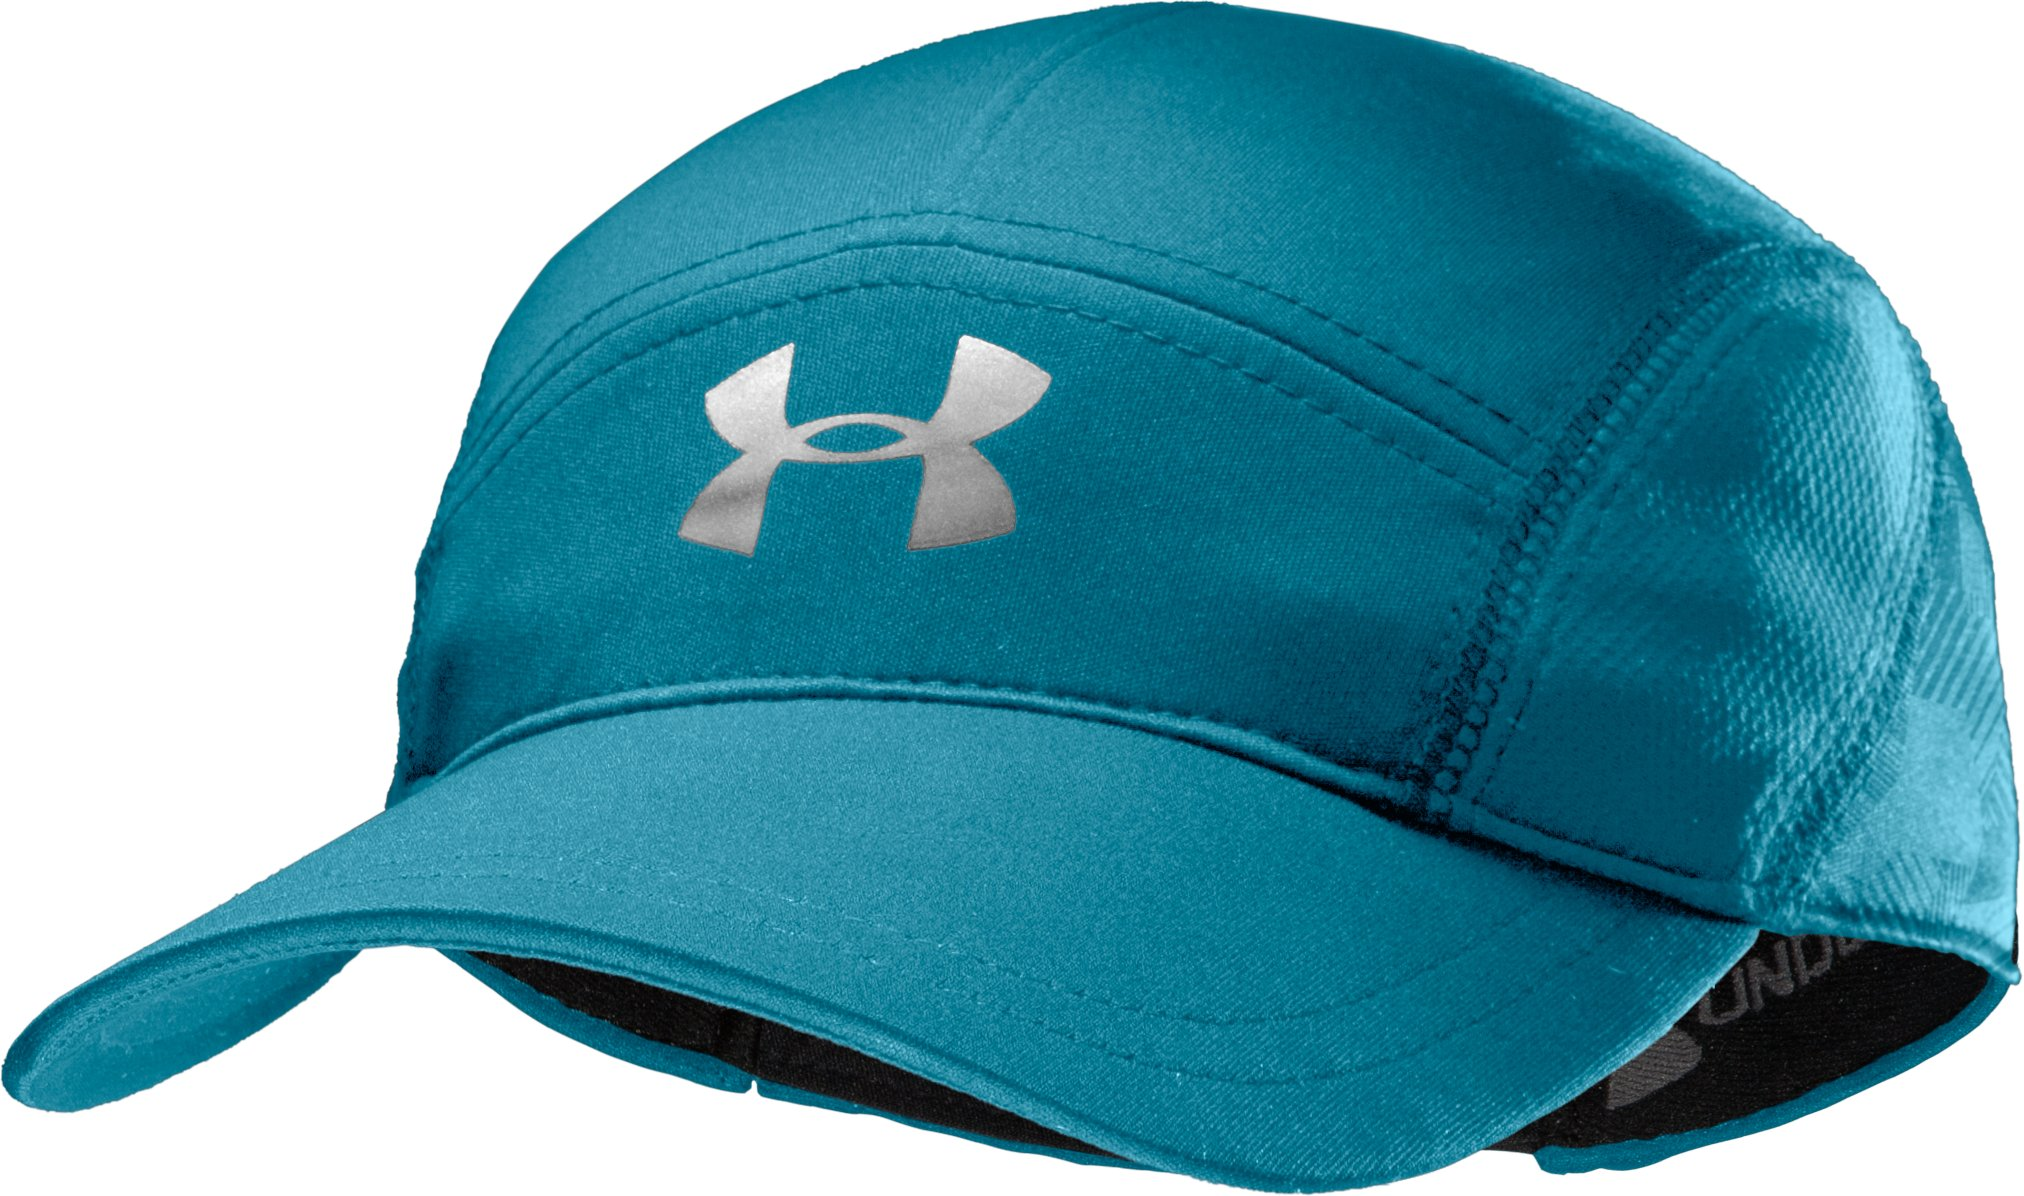 Men's coldblack® Run Cap, Capri